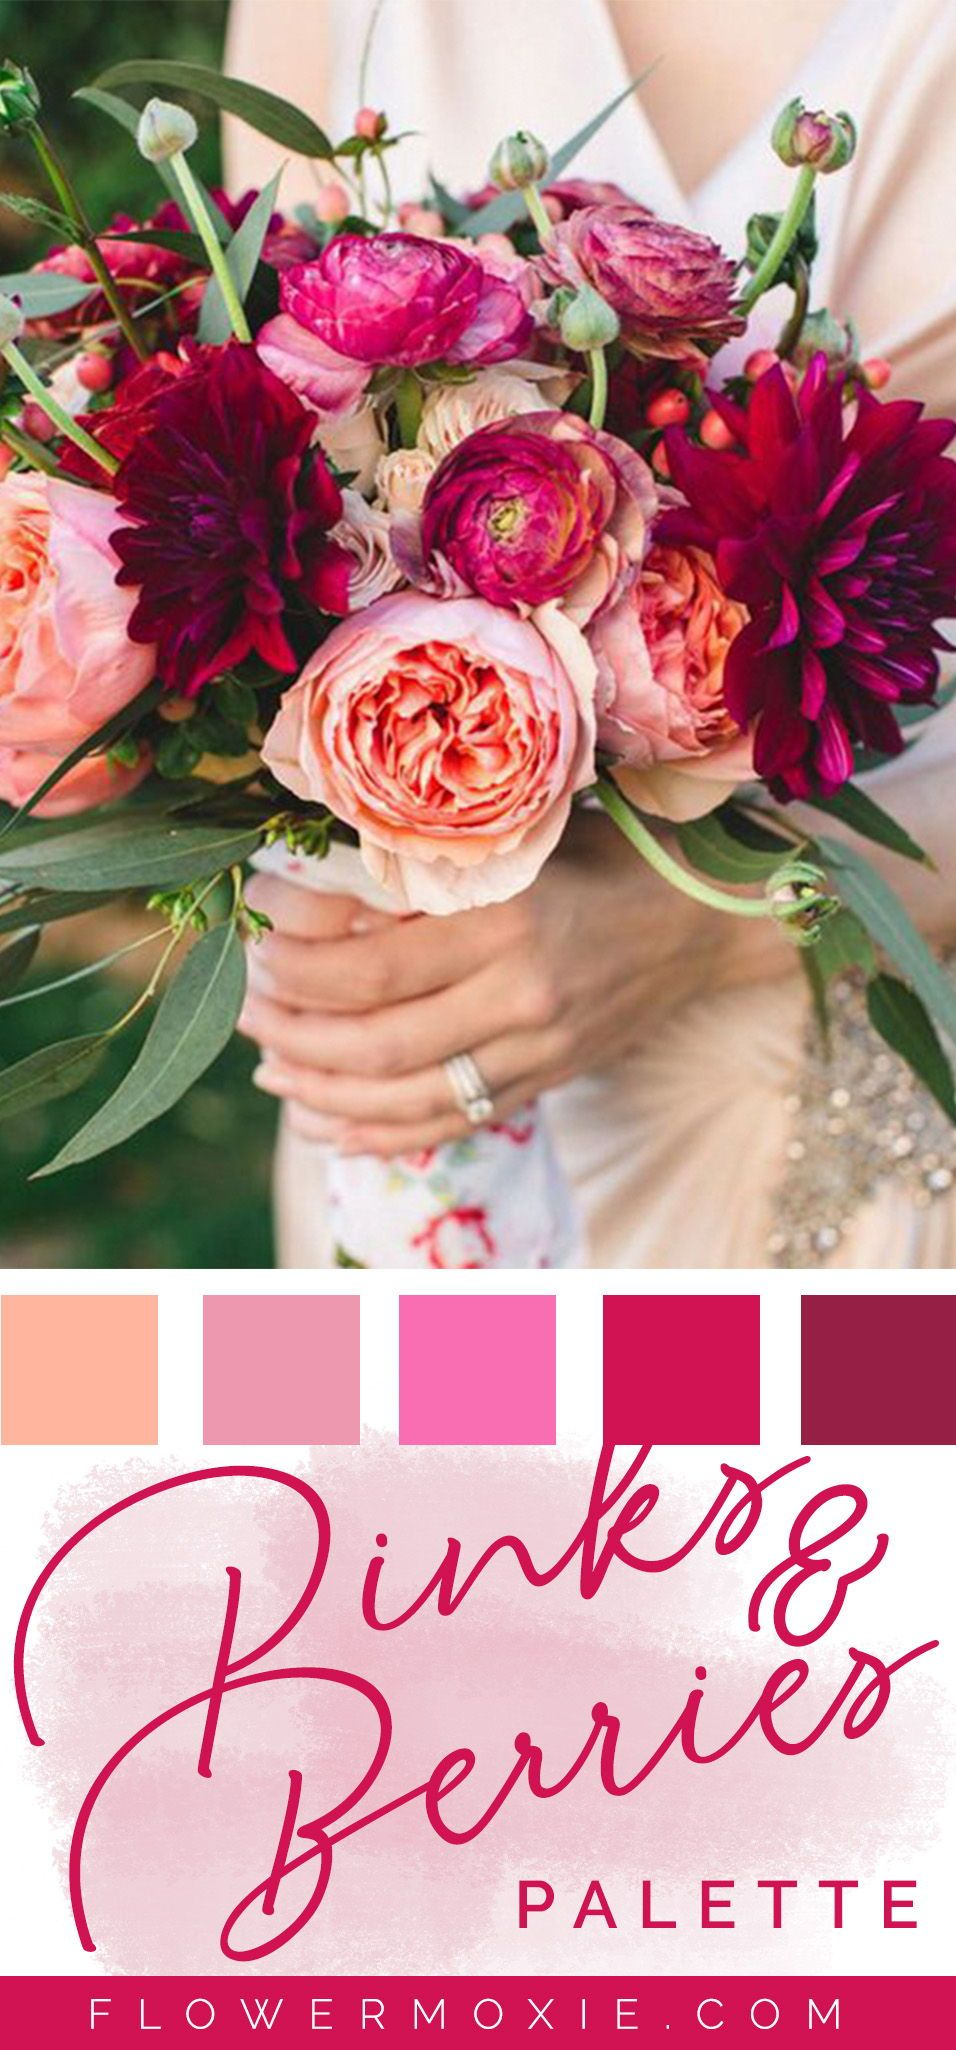 Get Inspired By Our Wedding Flower Packages Mix Match Flowers To Achieve The Look You Wa Wedding Flower Packages Online Wedding Flowers Bulk Wedding Flowers